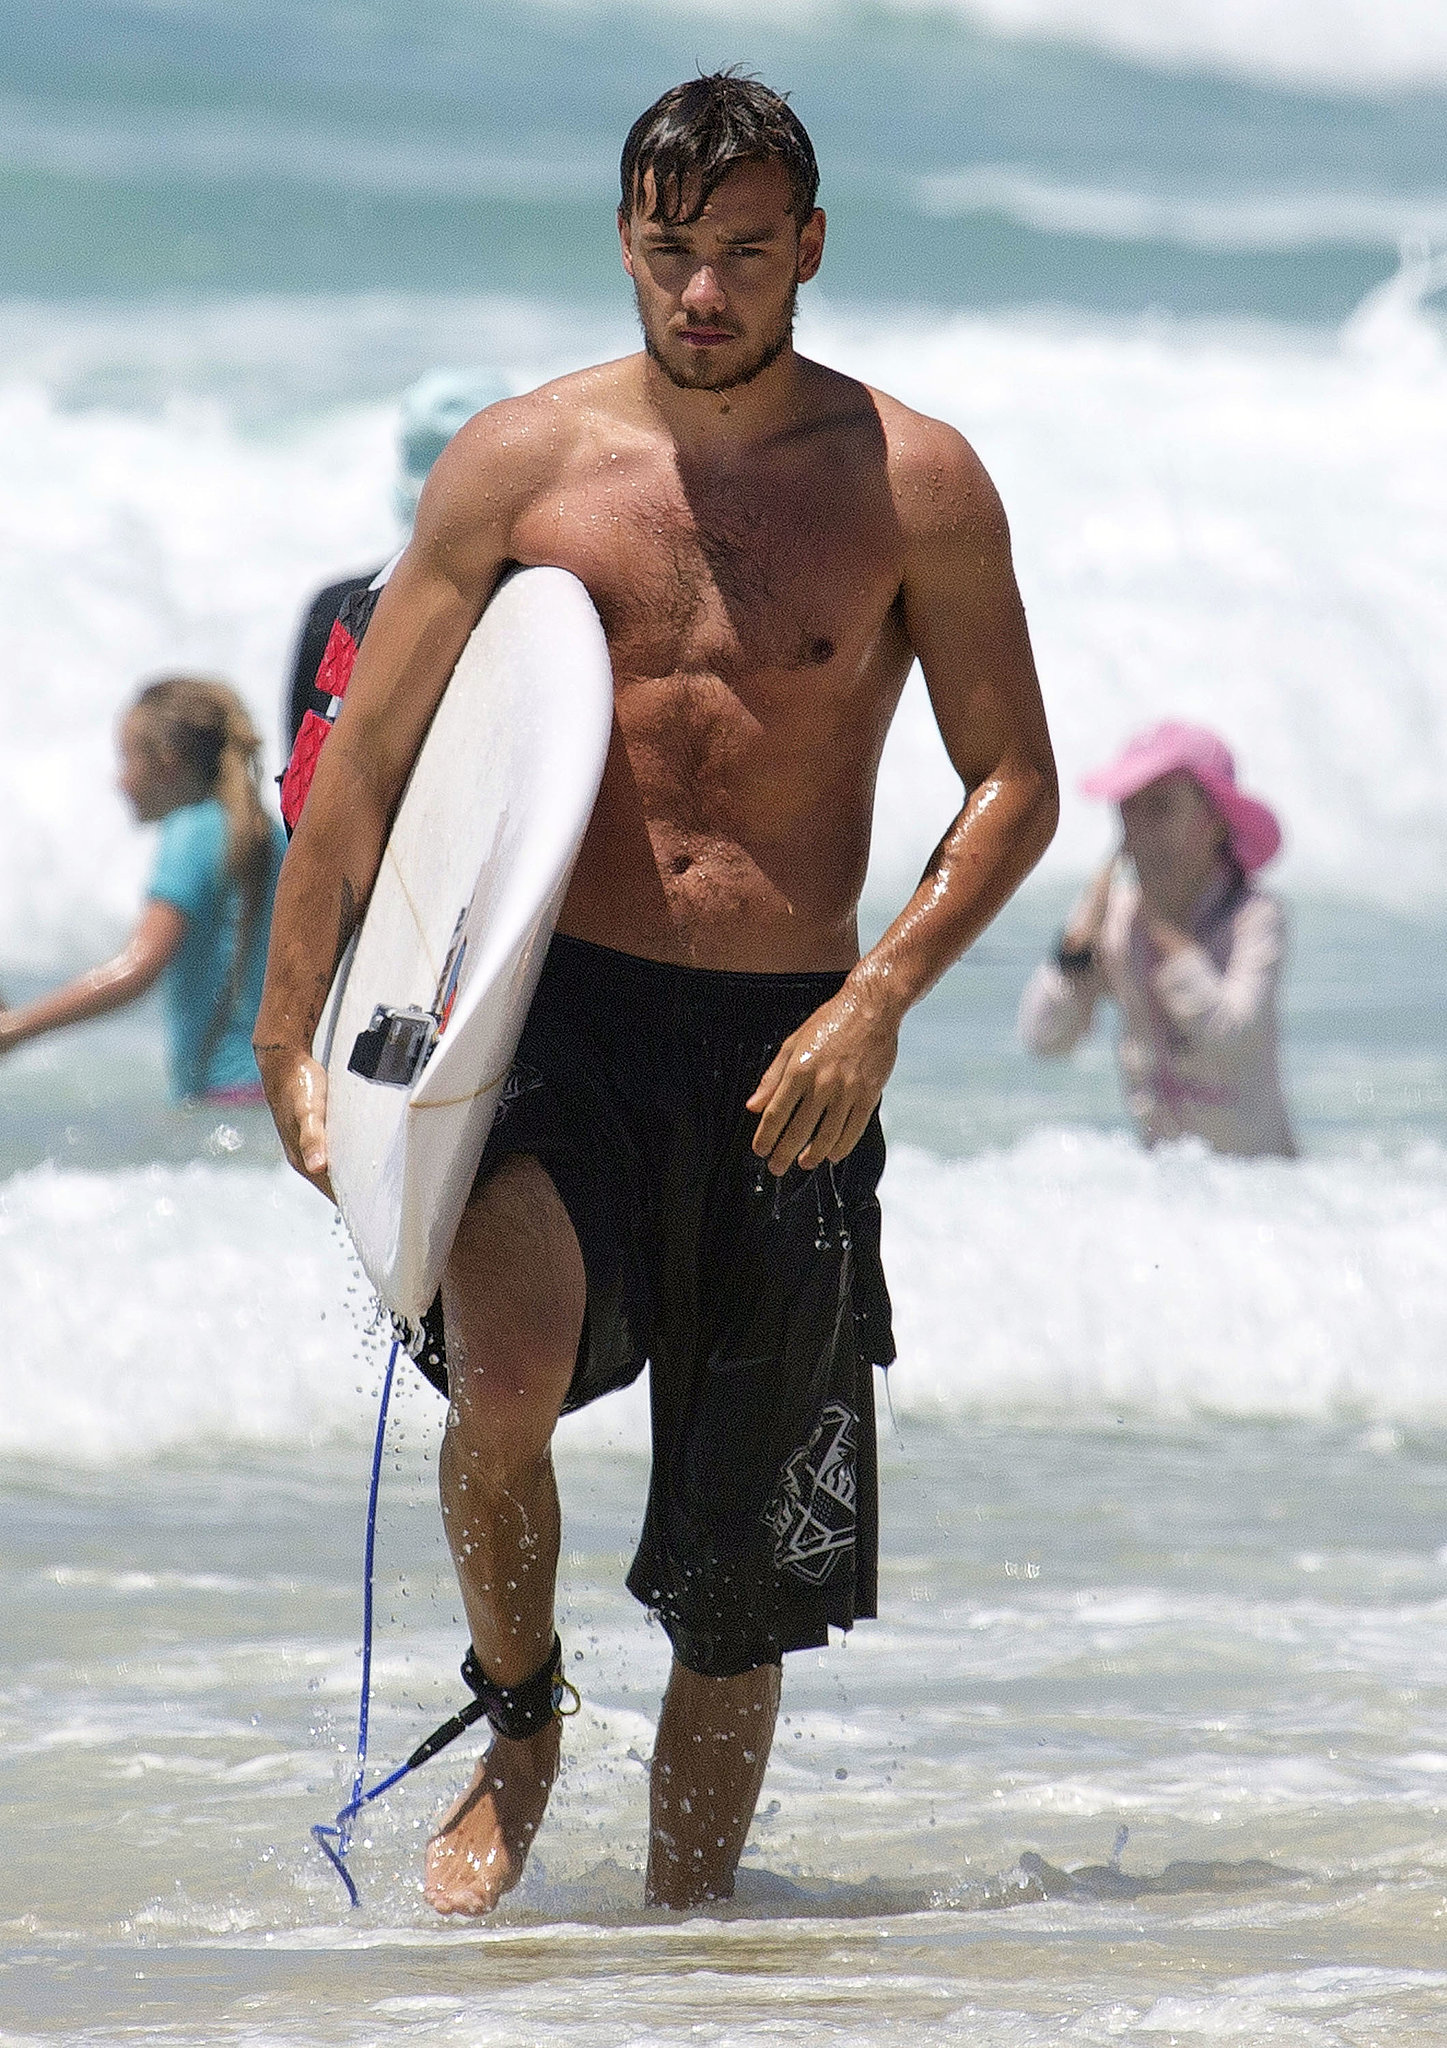 One Direction's Liam Payne went surfing in Australia in October.